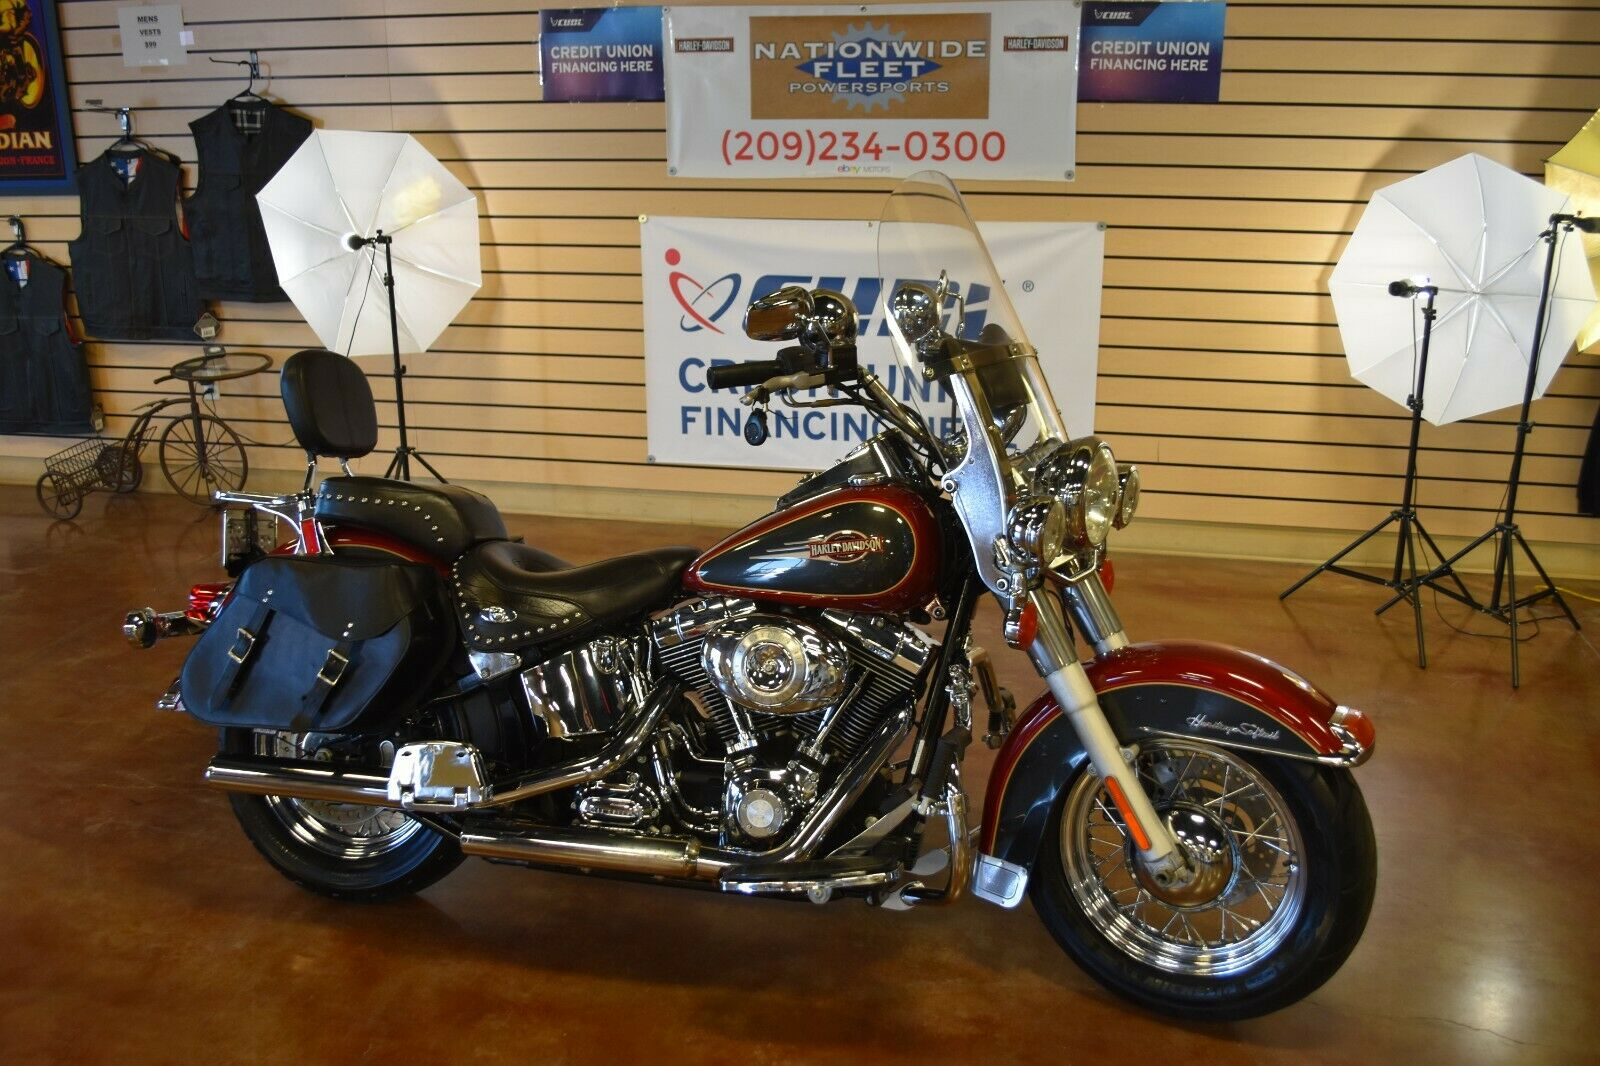 2007 Harley Davidson Heritage Softail Classic FLSTC Clean Title NO RESERVE